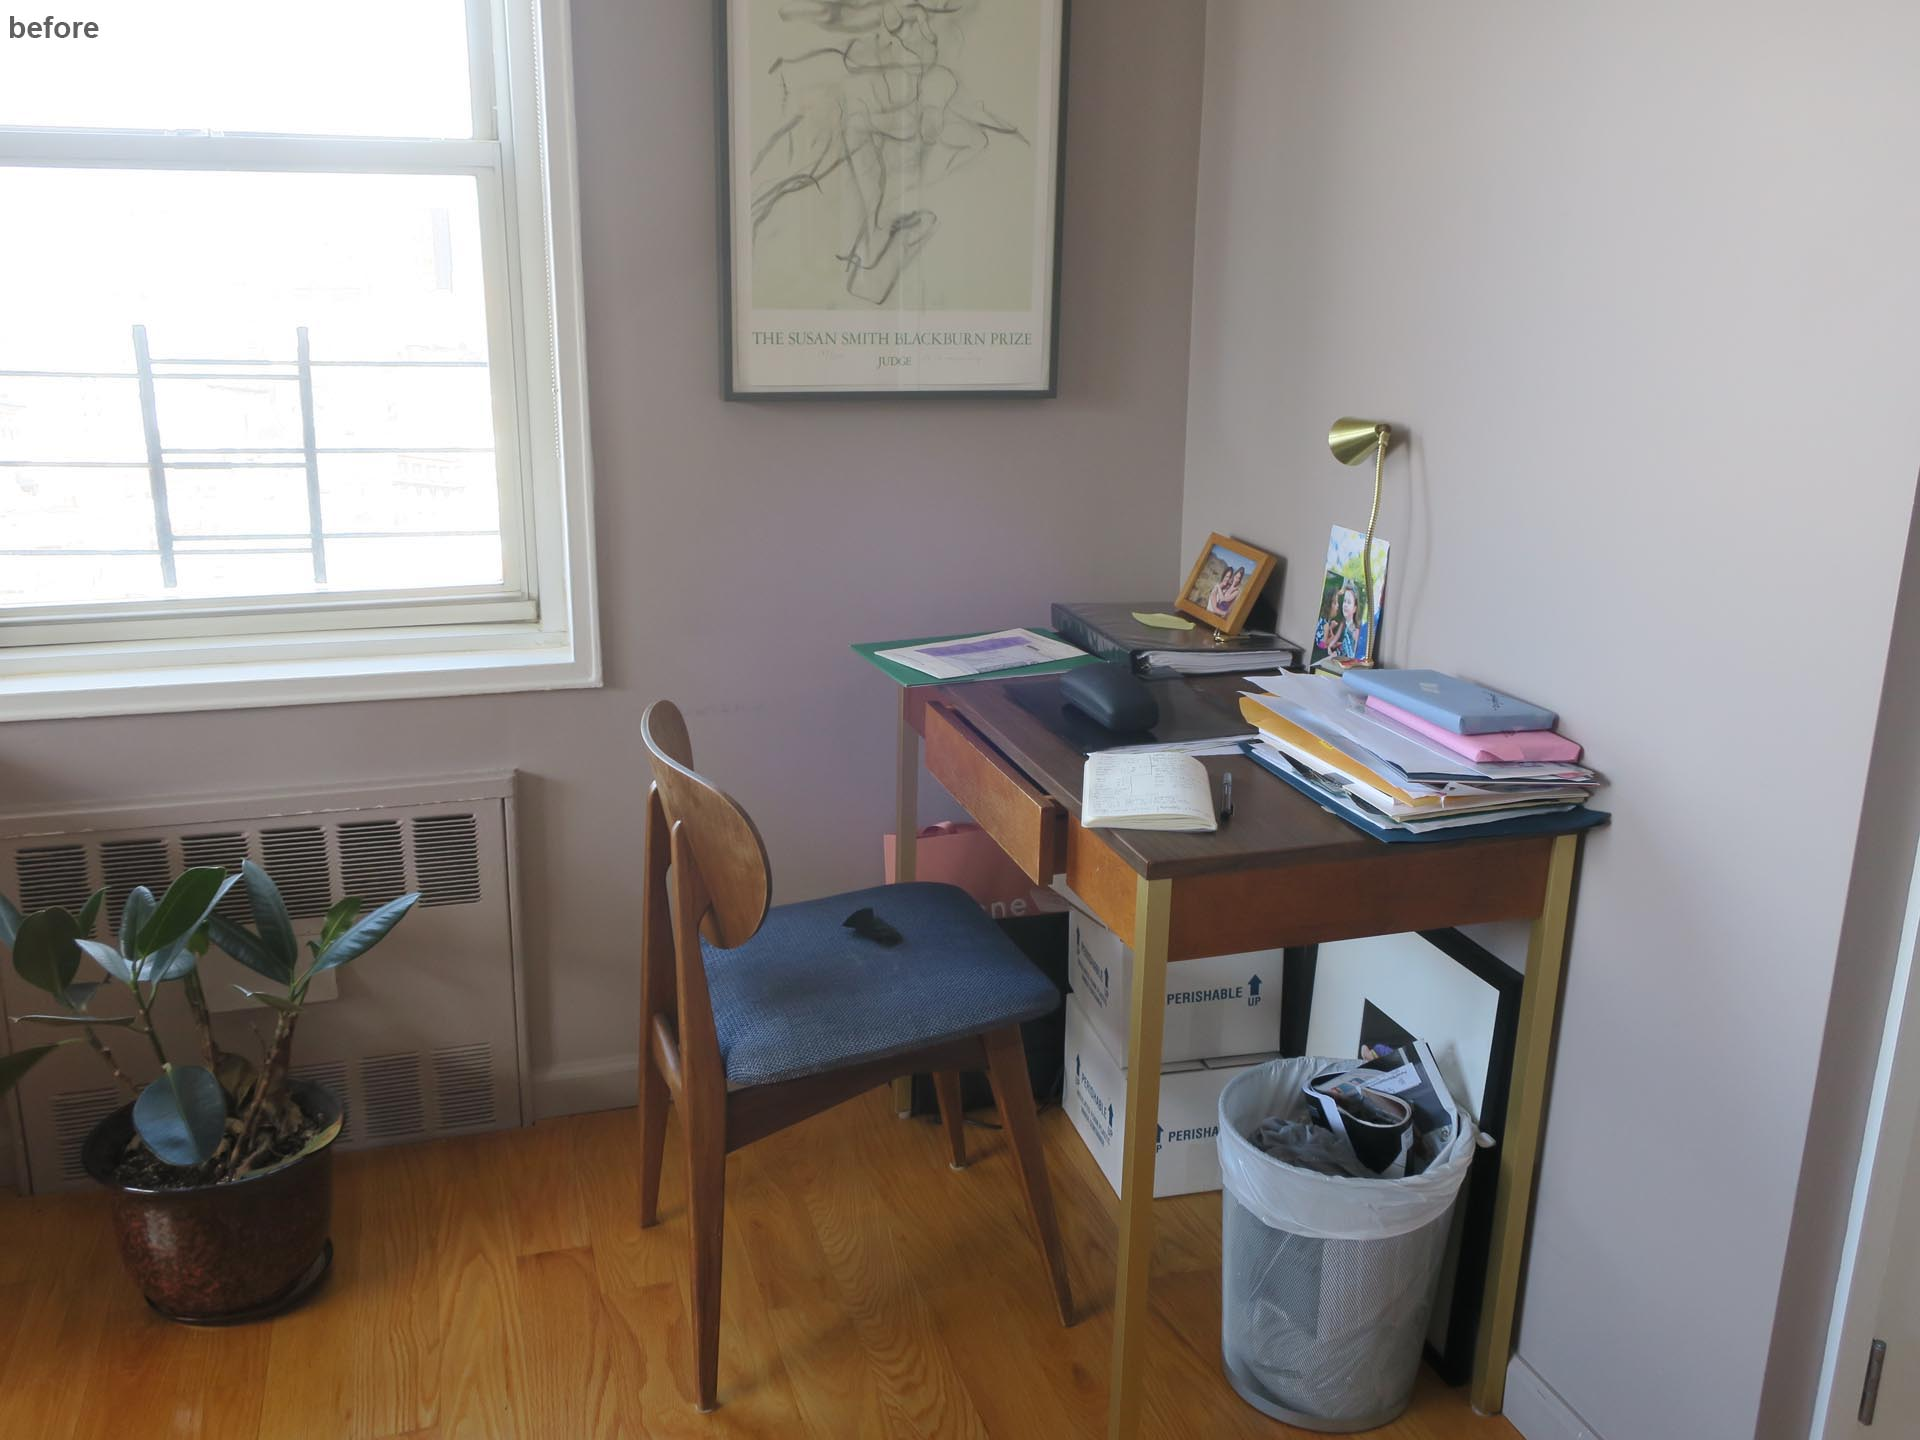 Before photo - a small desk in the corner with hardly any storage.